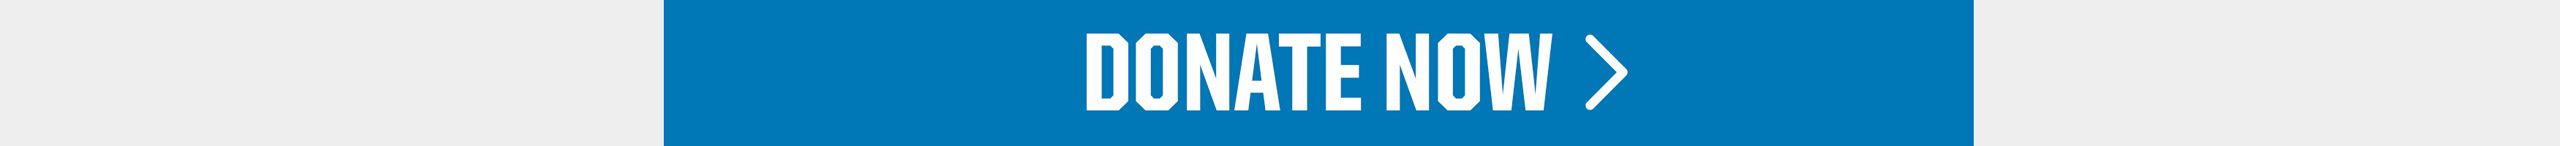 donate-now-btn